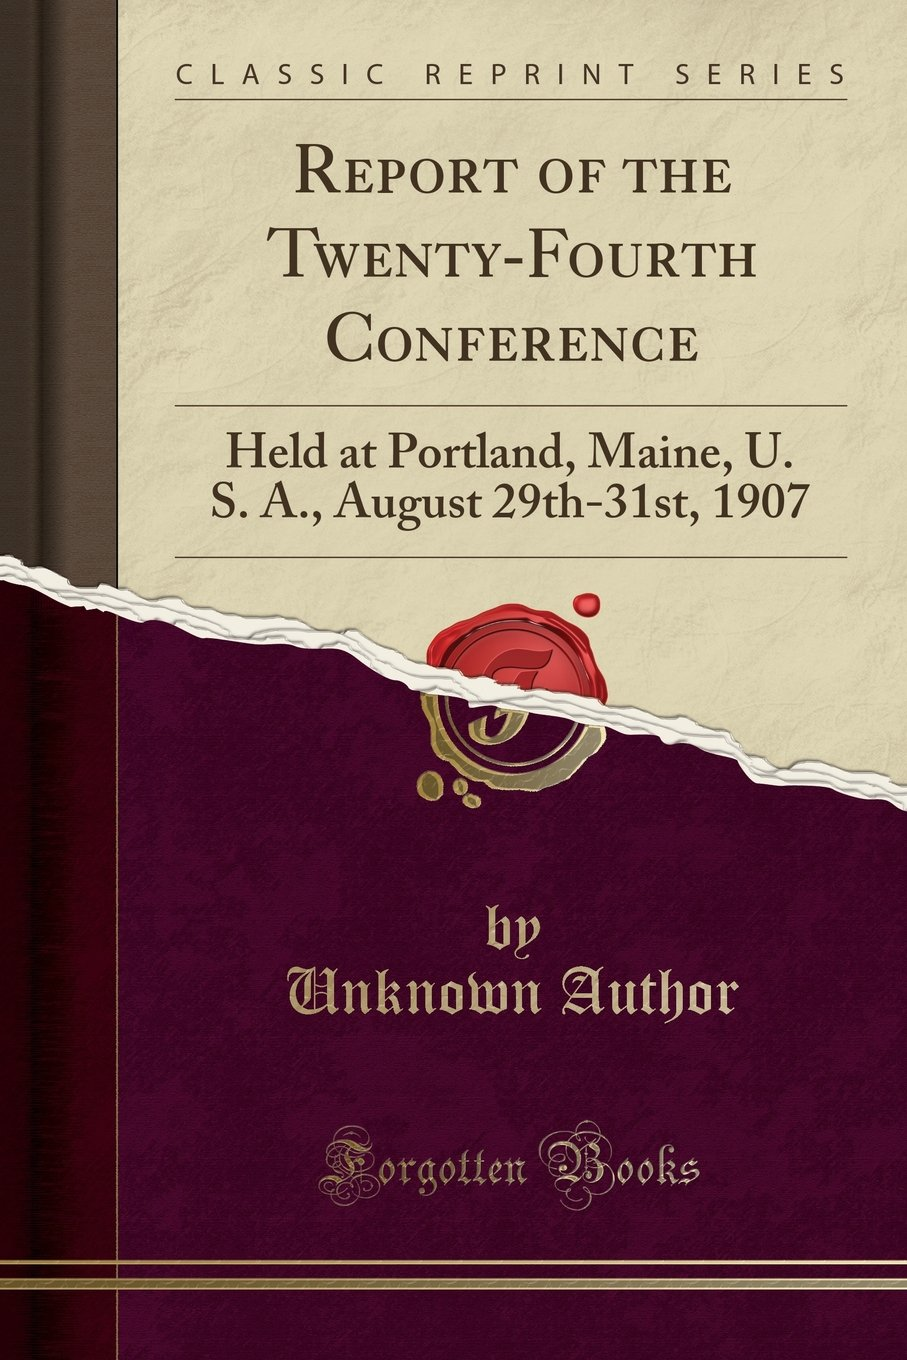 Download Report of the Twenty-Fourth Conference: Held at Portland, Maine, U. S. A., August 29th-31st, 1907 (Classic Reprint) ebook